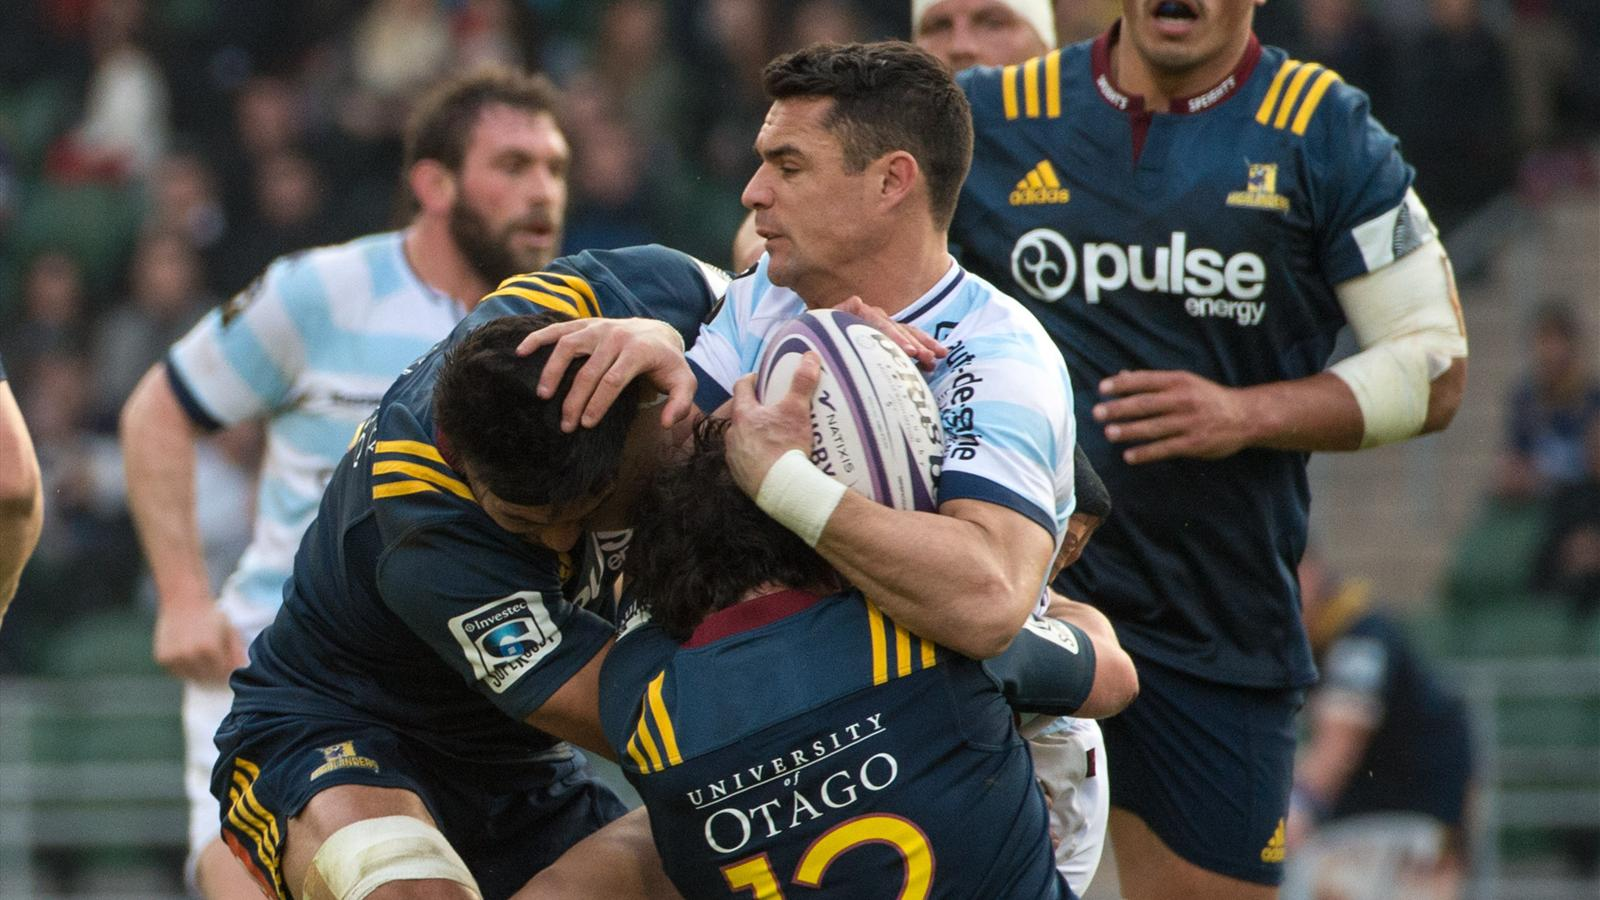 Rugby vers une coupe du monde des clubs rugby rugbyrama - Coupe du monde des clubs 2009 ...